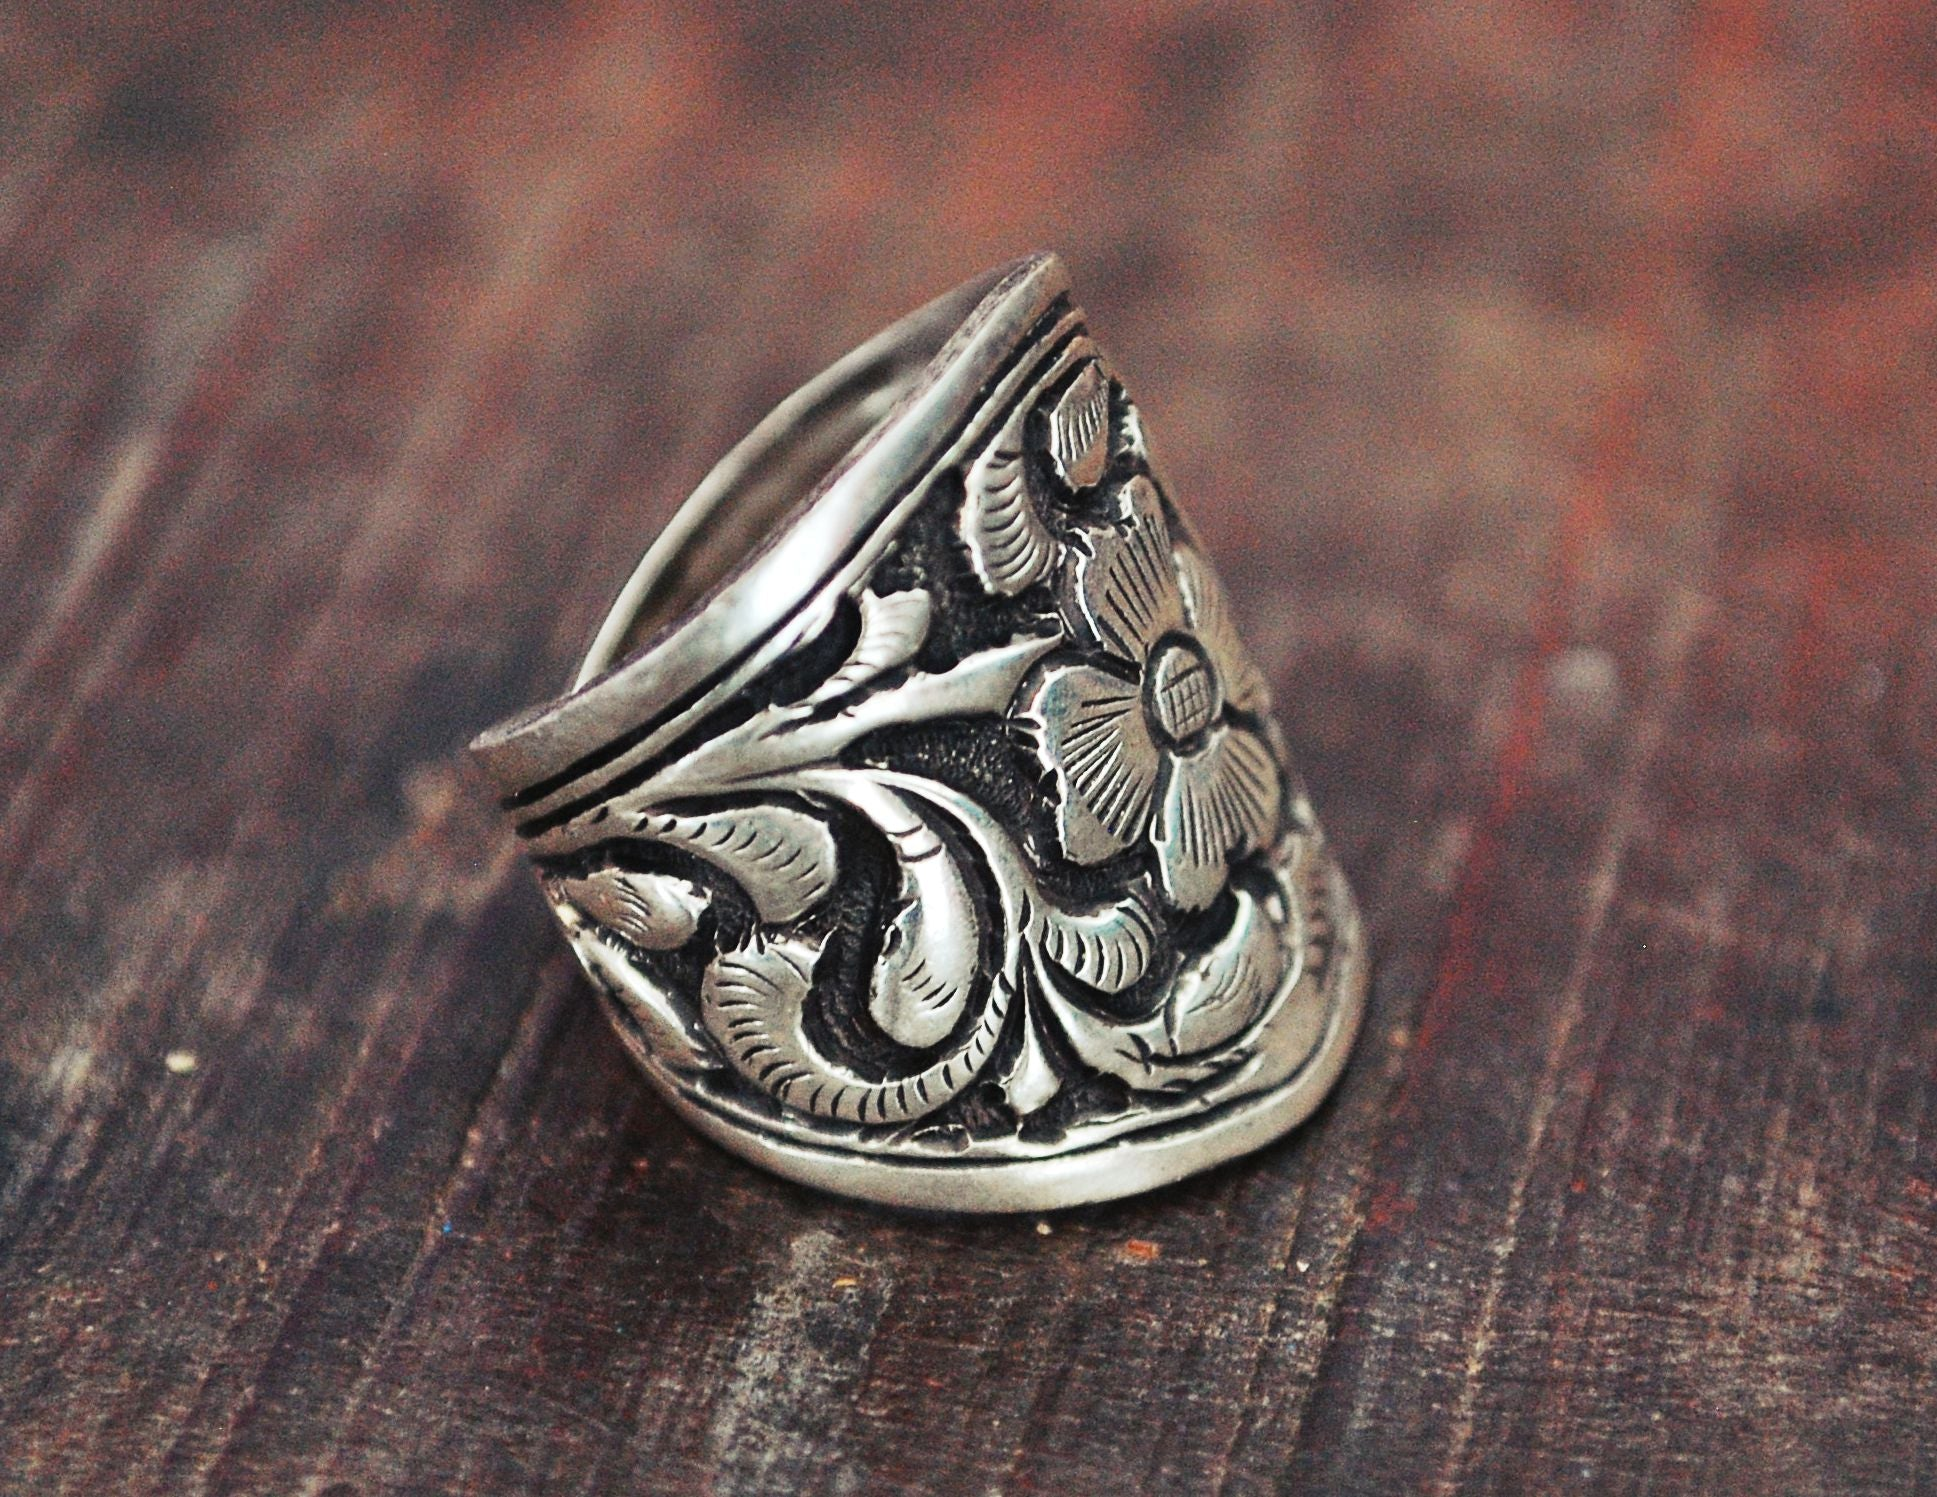 Ethnic Band Ring from India - Size 6.5